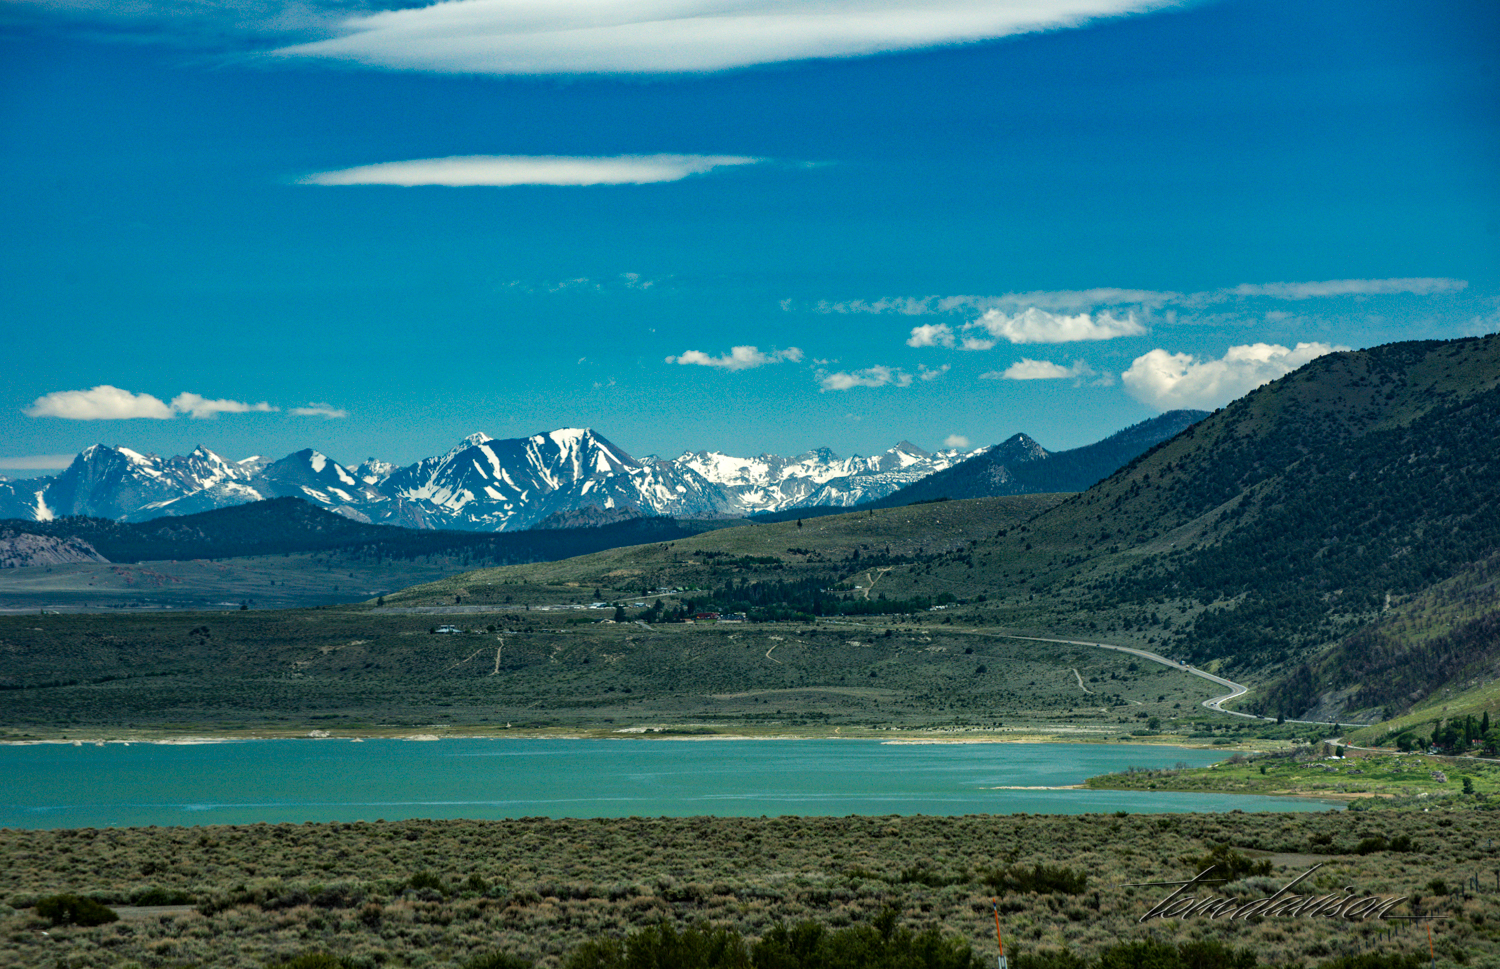 On the way home we stopped at an overlook and below us was the beautiful Mono Lake with its blue-green water. There was still snow on some of the taller mountains. Perfect photographic ending of a very fun-filled day.